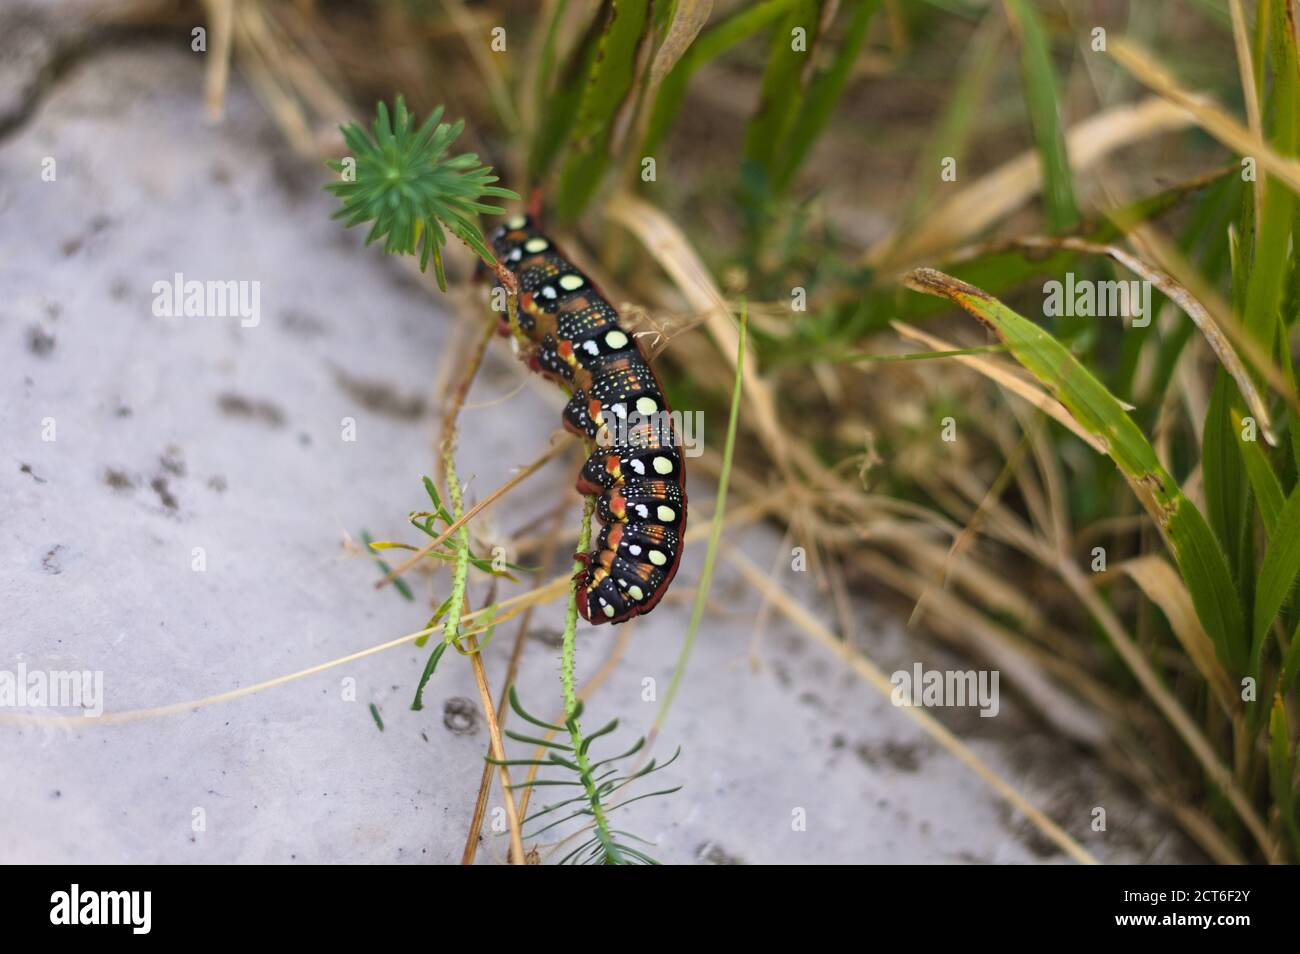 A black and red caterpillar with white dots on the back is eating a leaf (Marche, Italy, Europe) Stock Photo